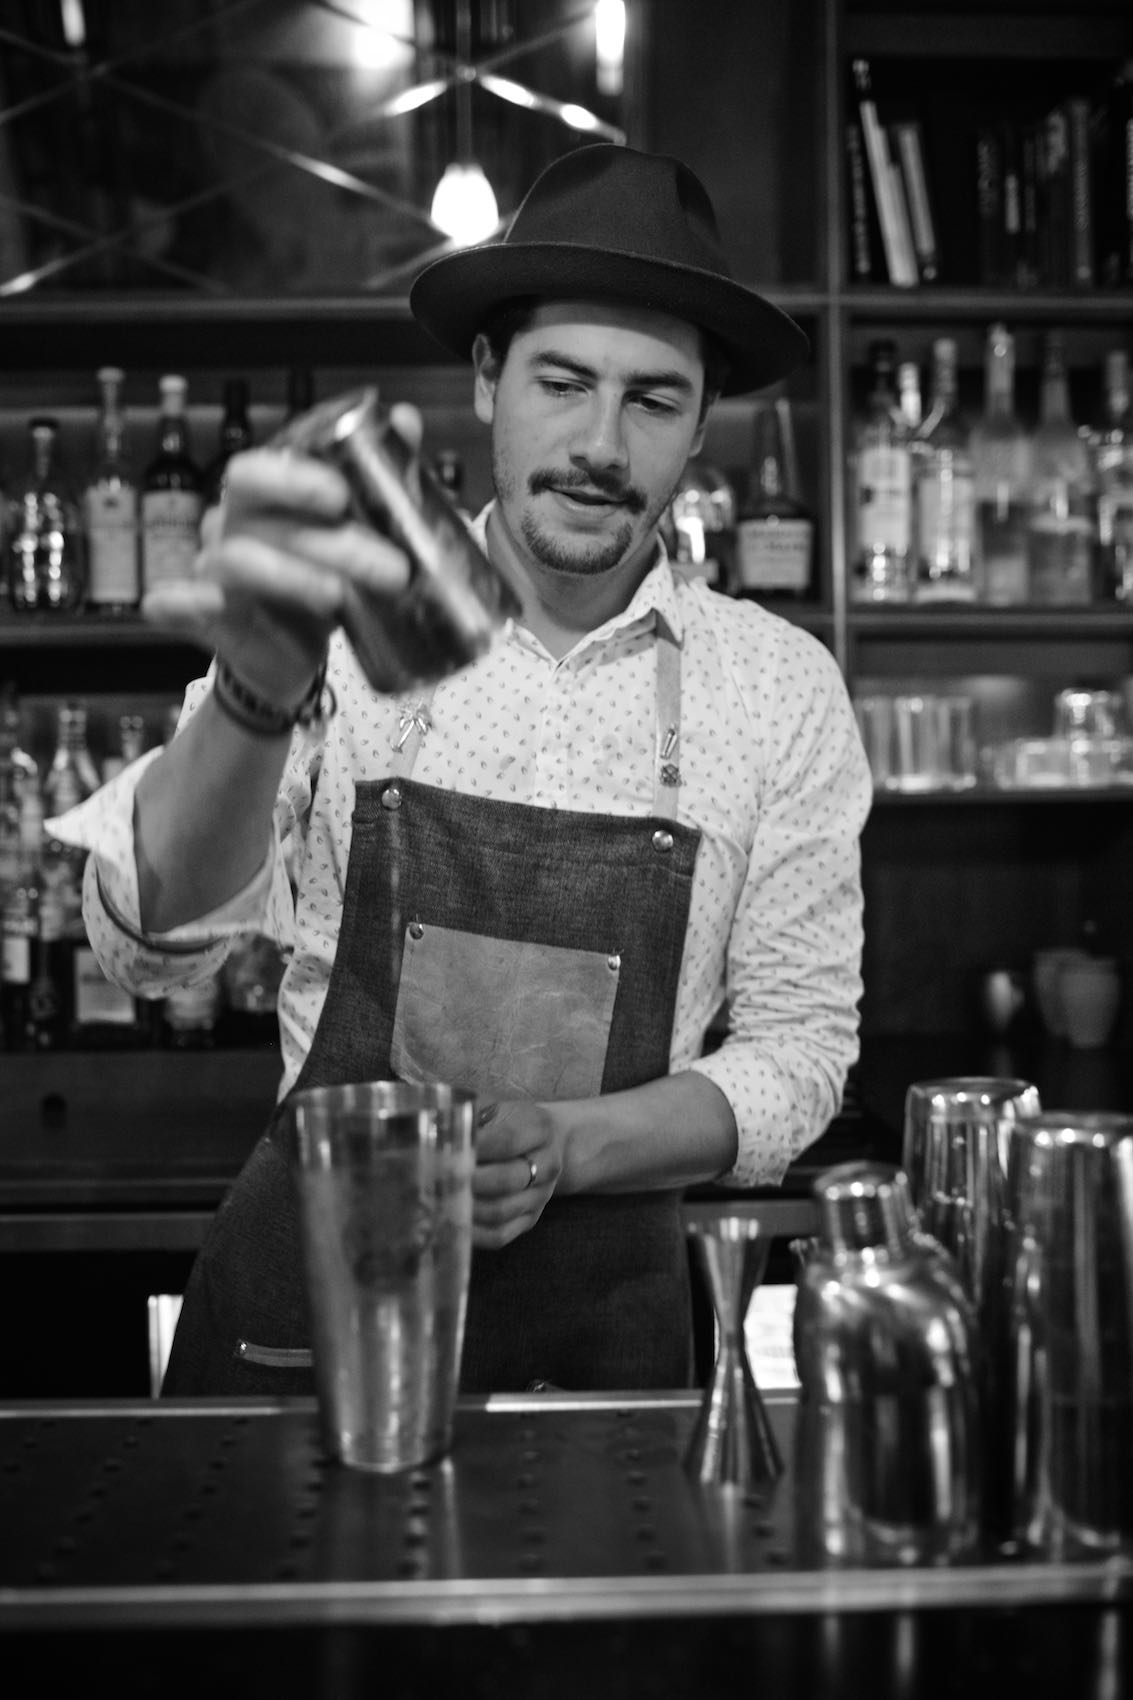 Jody Horton Photography - Bartender preparing cocktails behind a bar, shot in B&W.